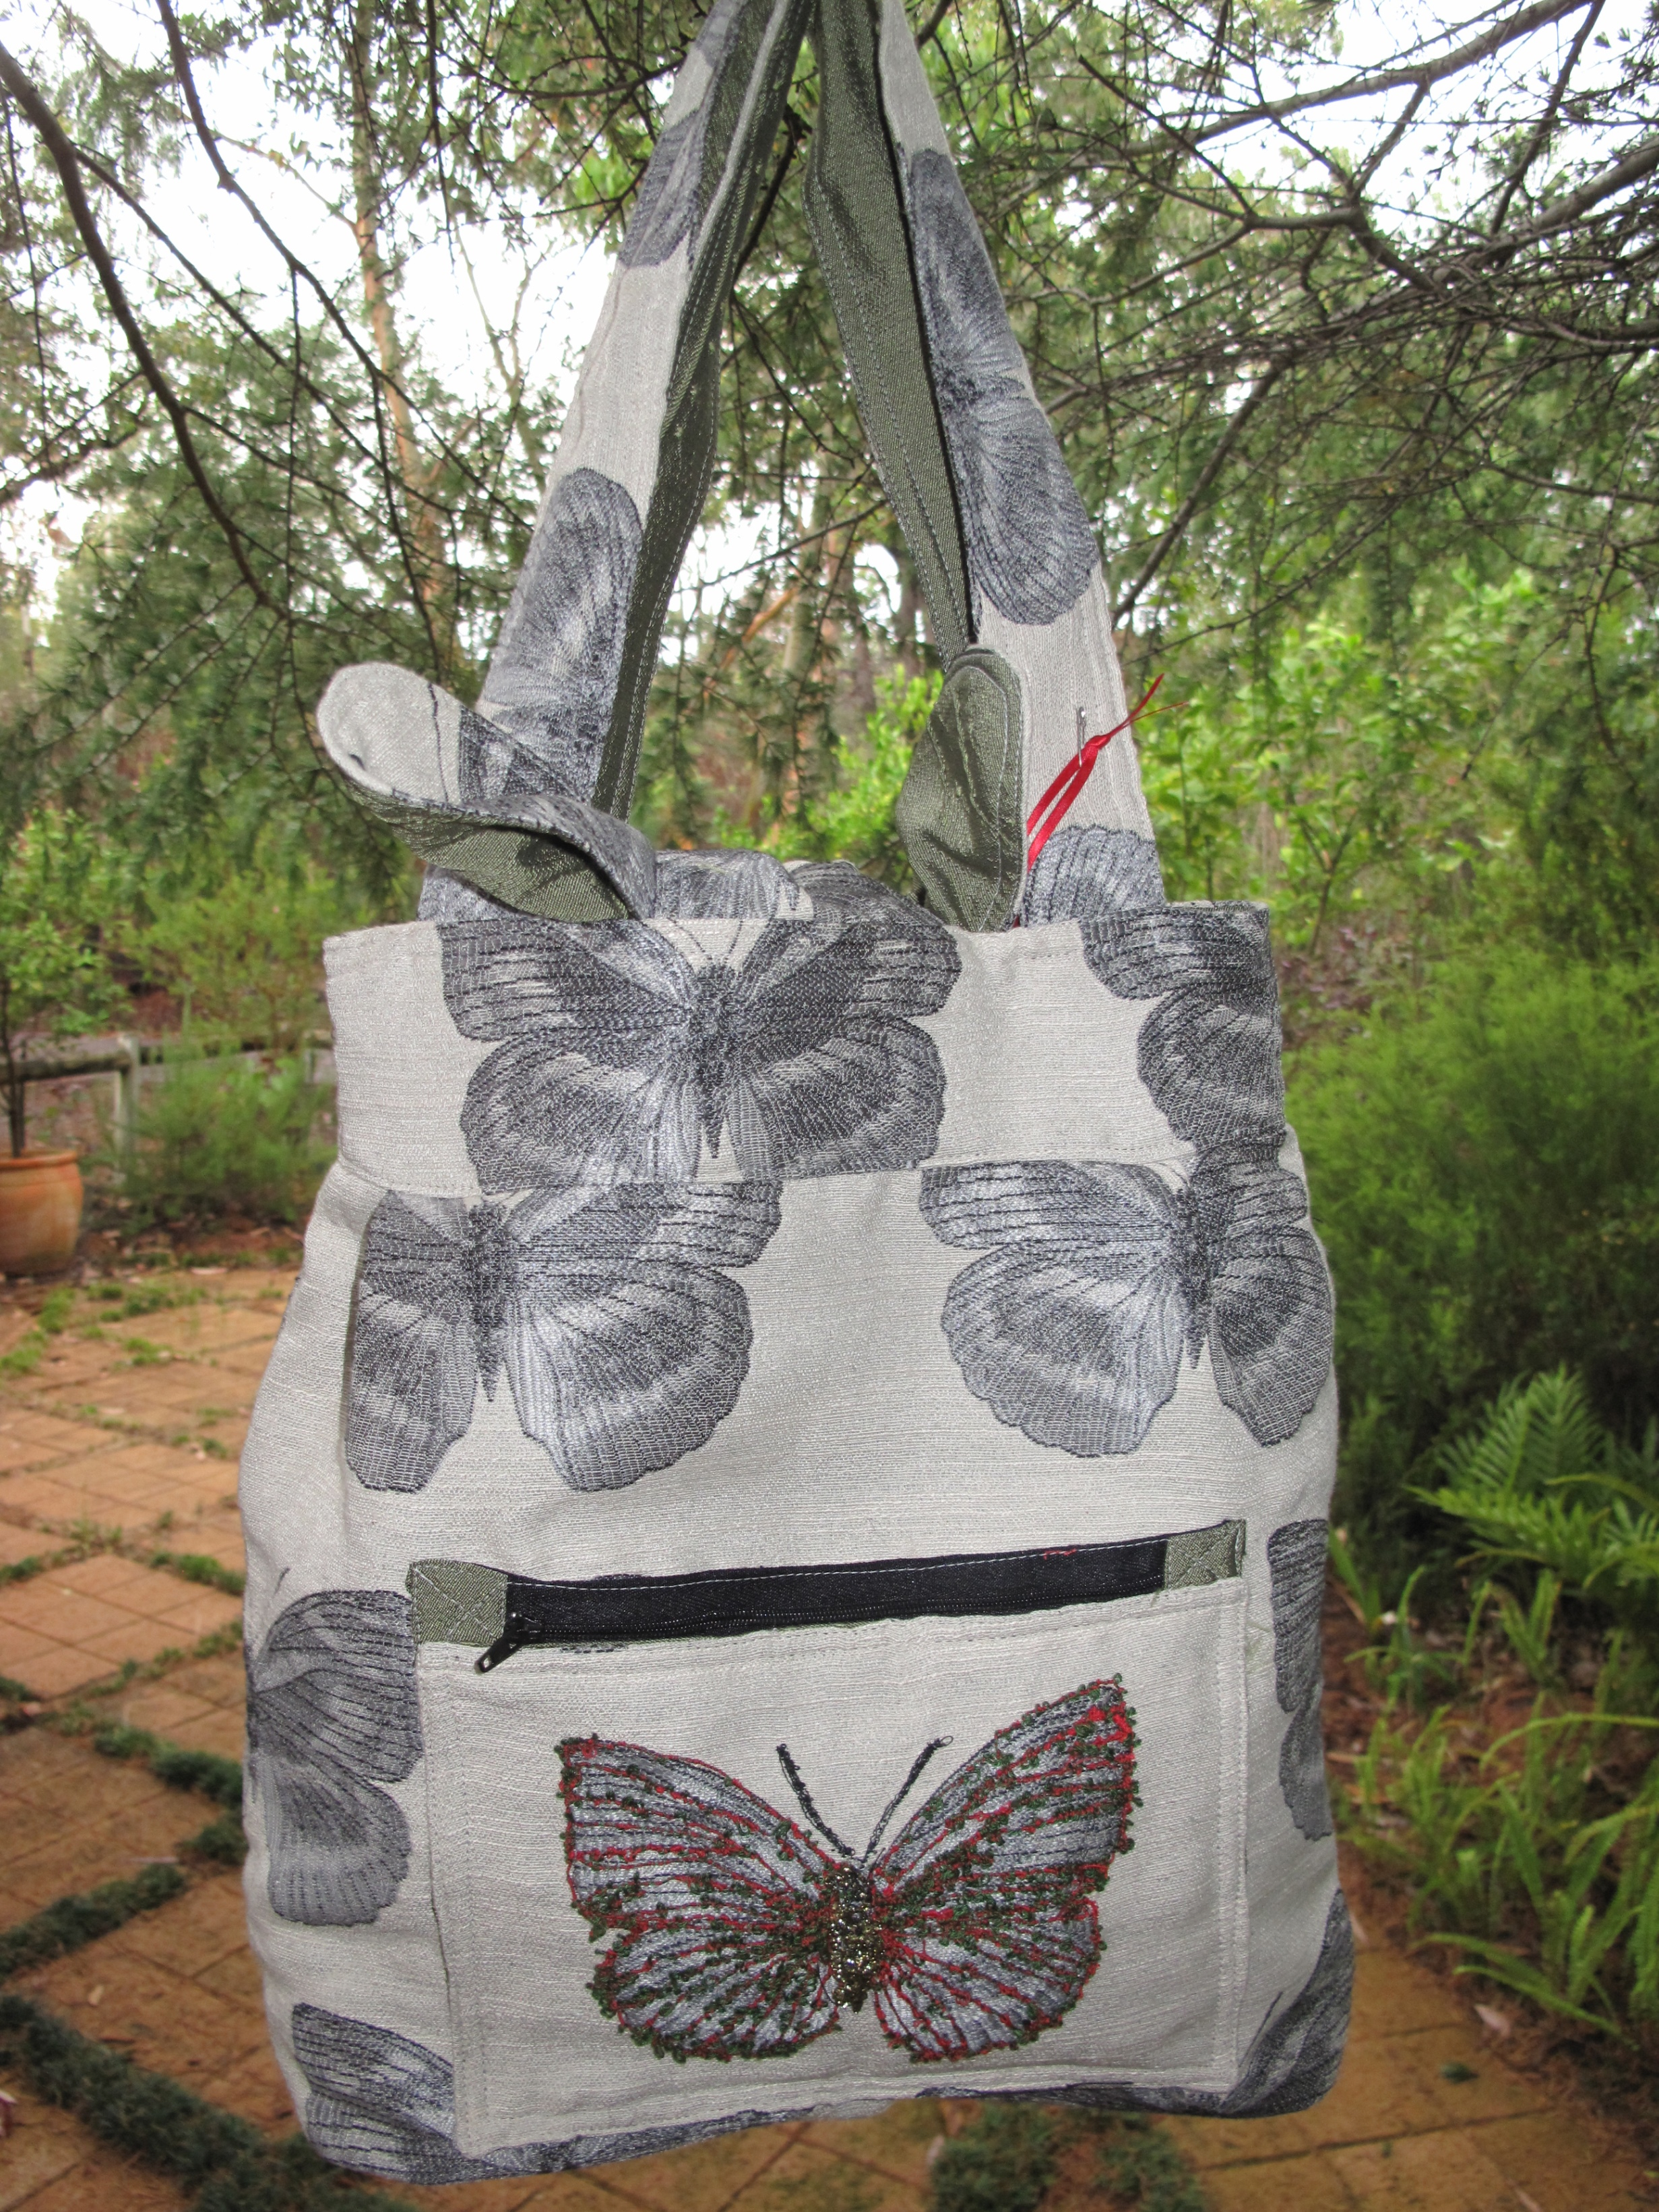 Reversible Material Bag - Butterfly